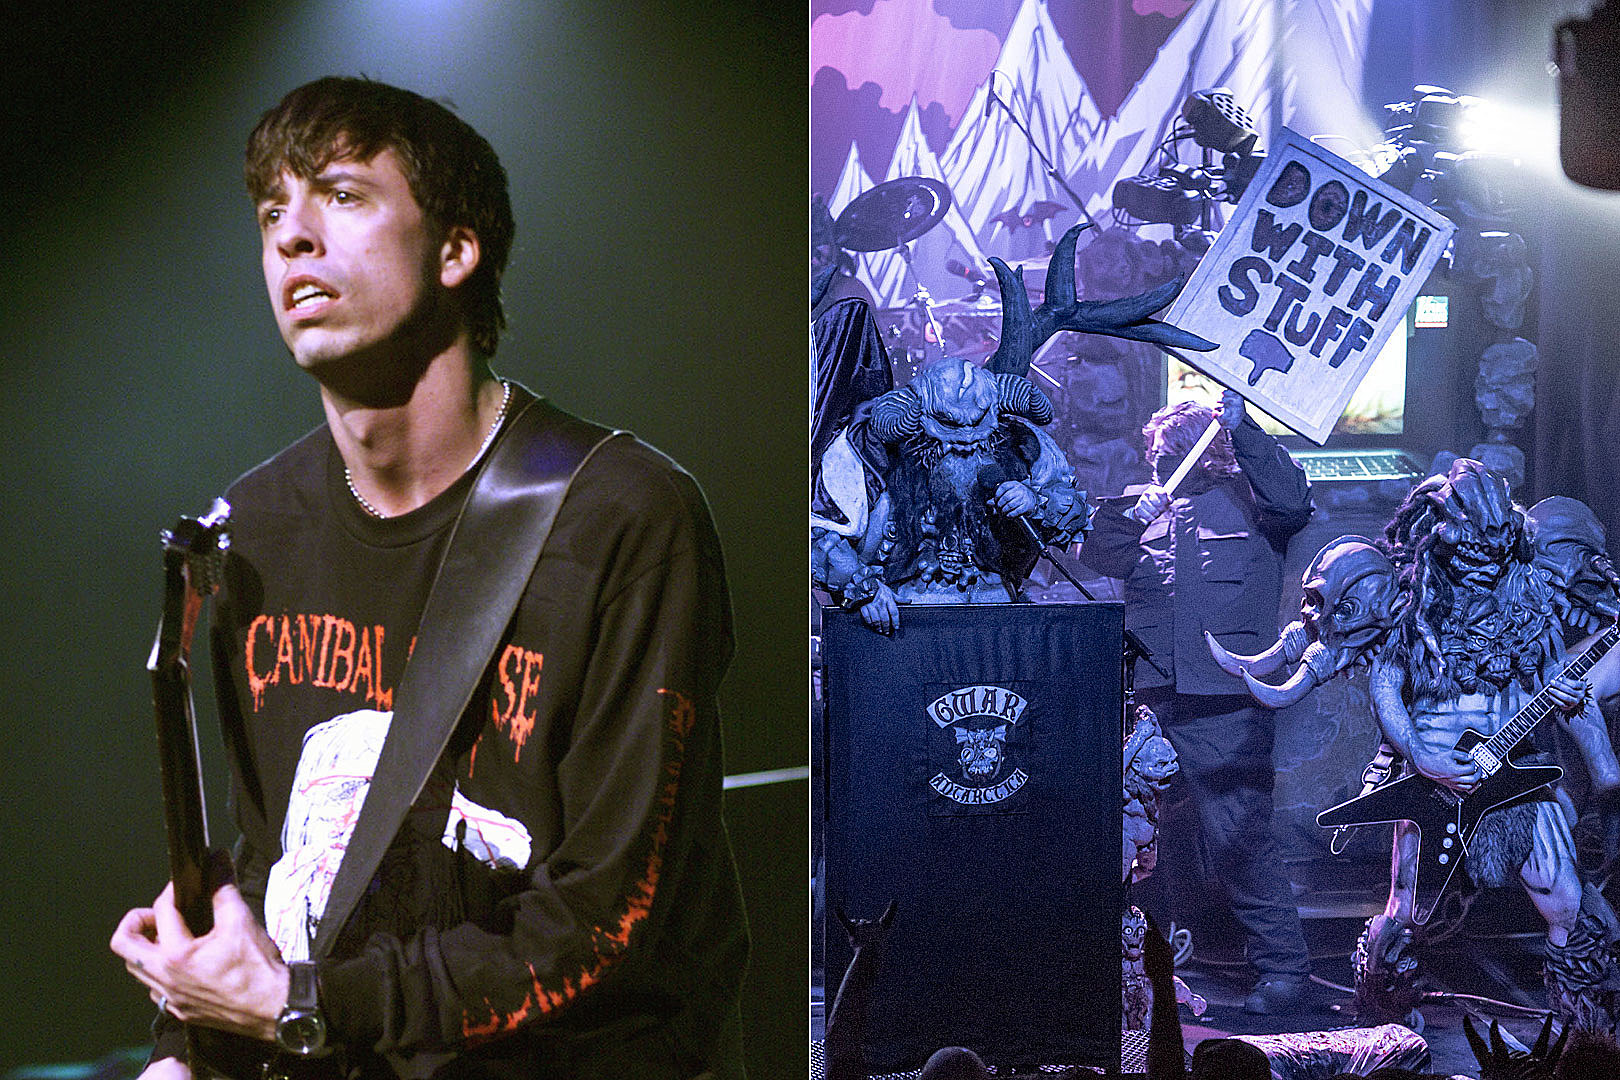 Dave Grohl Reveals He Once Considered Joining GWAR